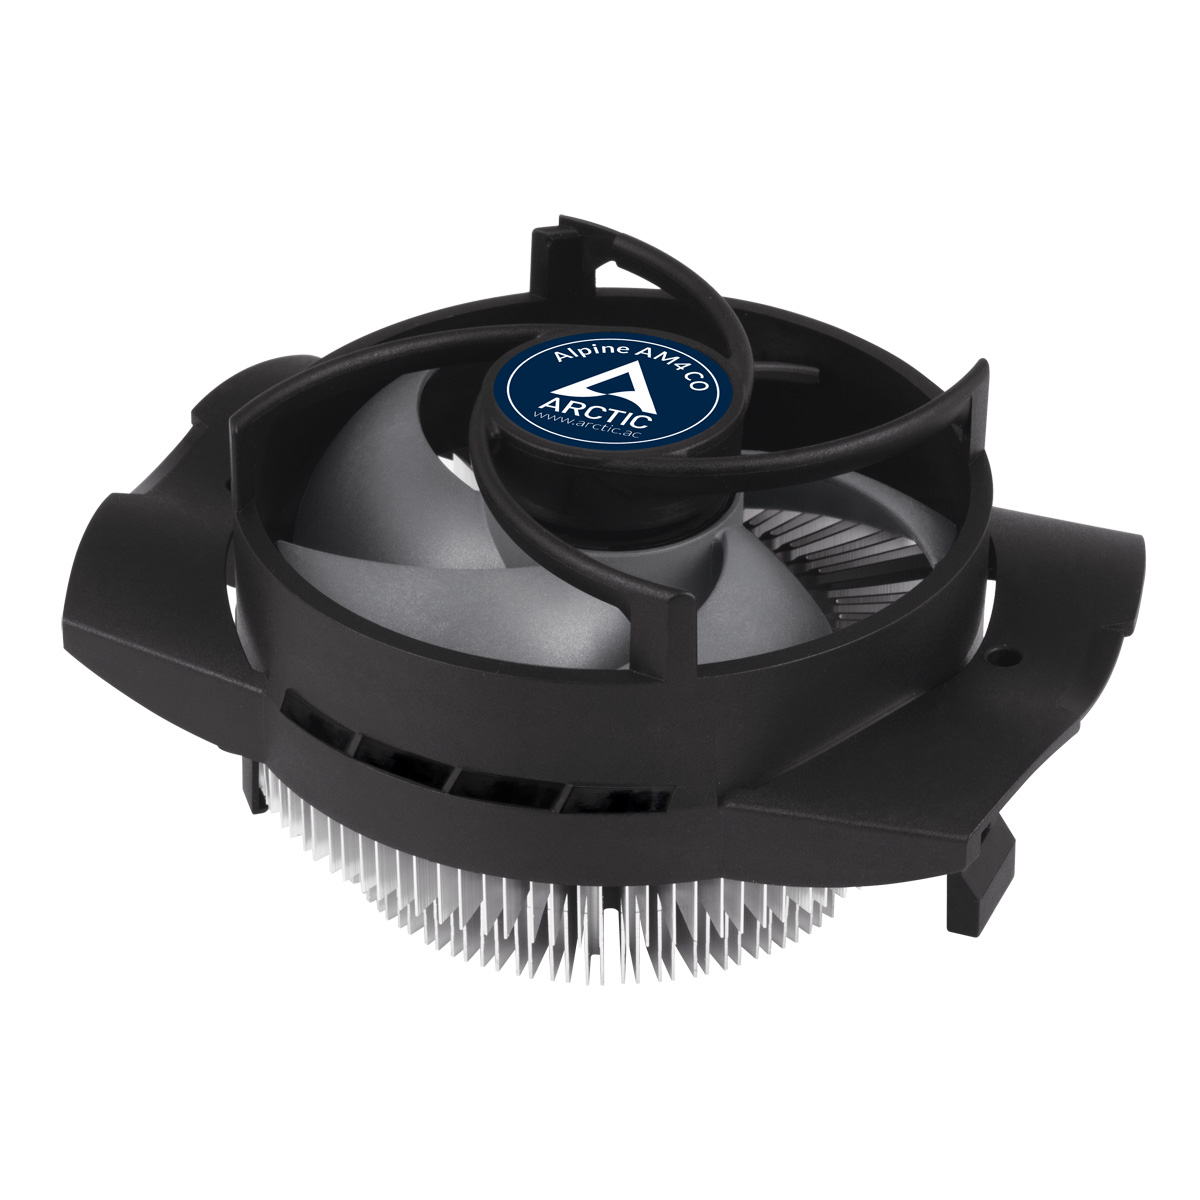 ACALP00032A ARCTIC Alpine AM4 CO - Compact AMD CPU-Cooler for Continuous Operation - Ent01